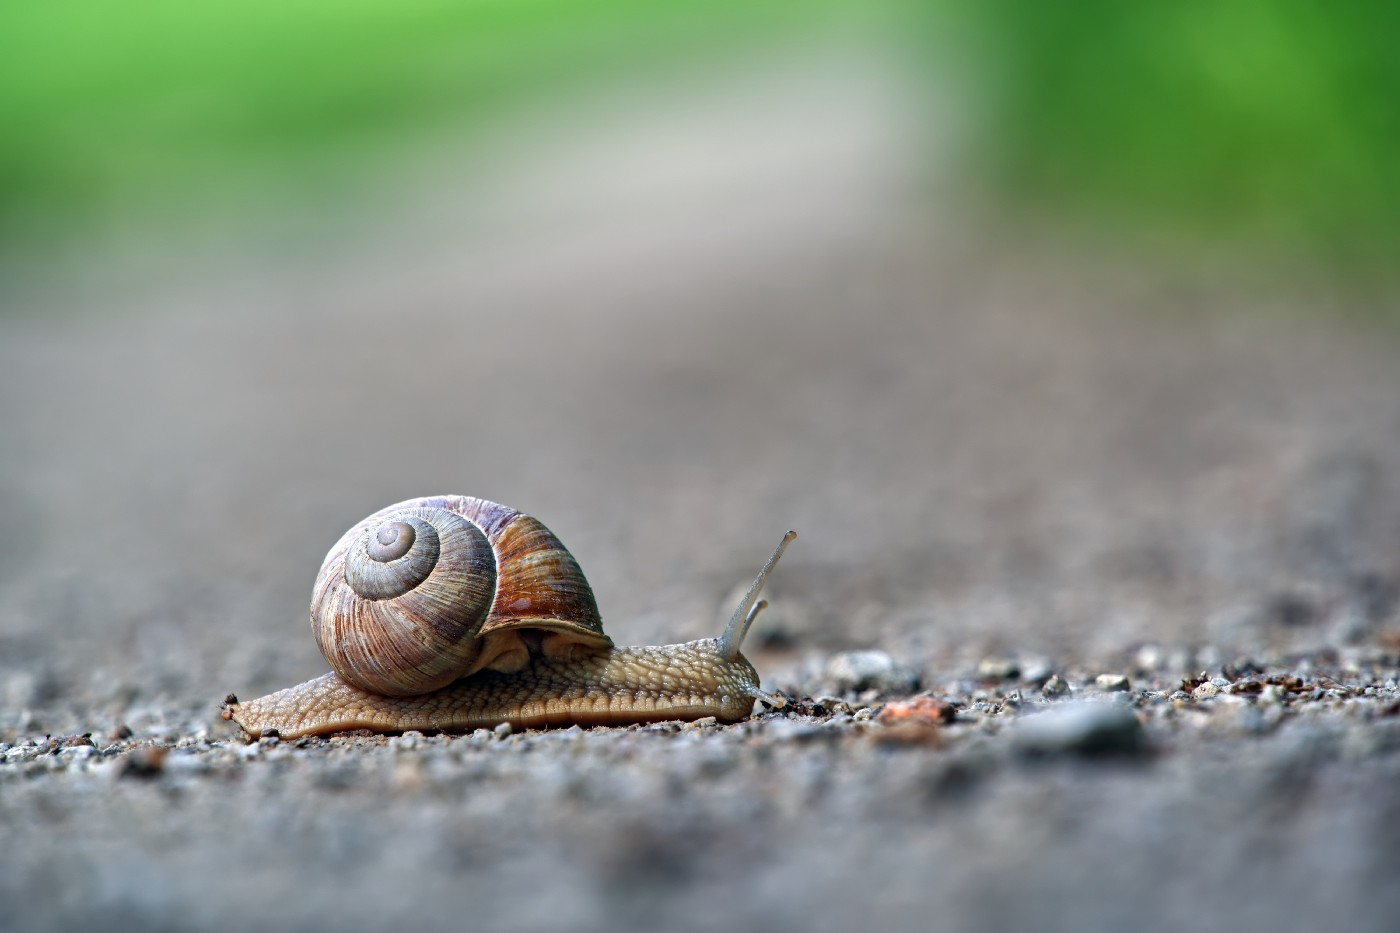 A snail on a road